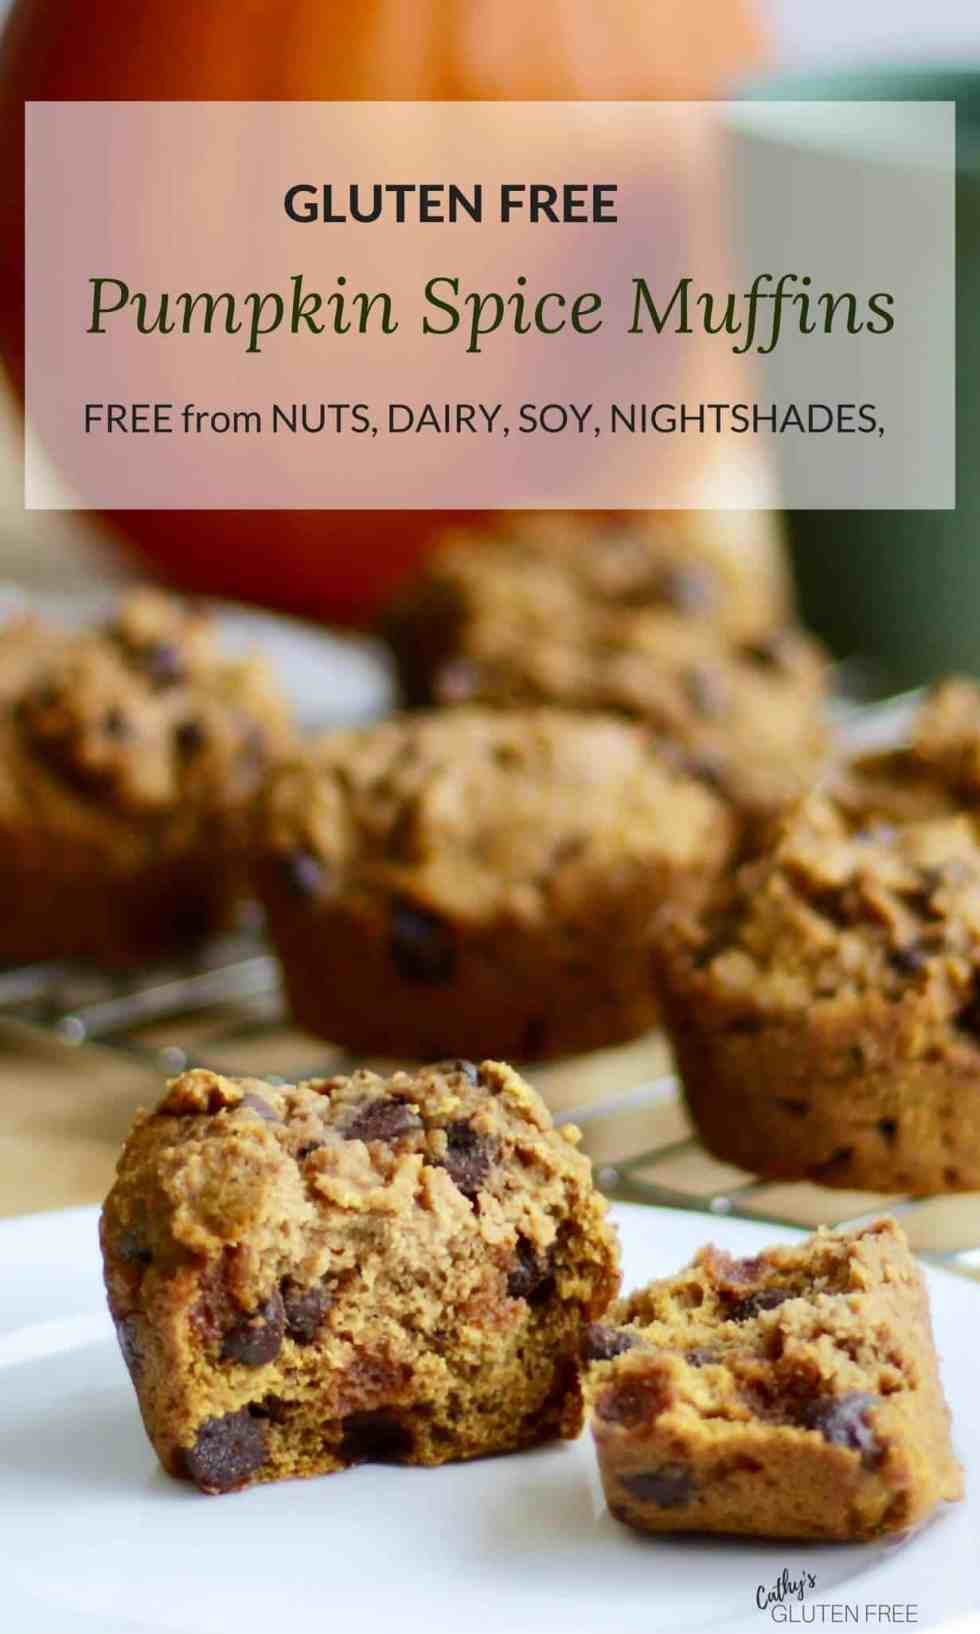 Gluten Free Pumpkin Spice Muffins | Free from nuts, soy, corn, nightshades CathysGlutenFree.com